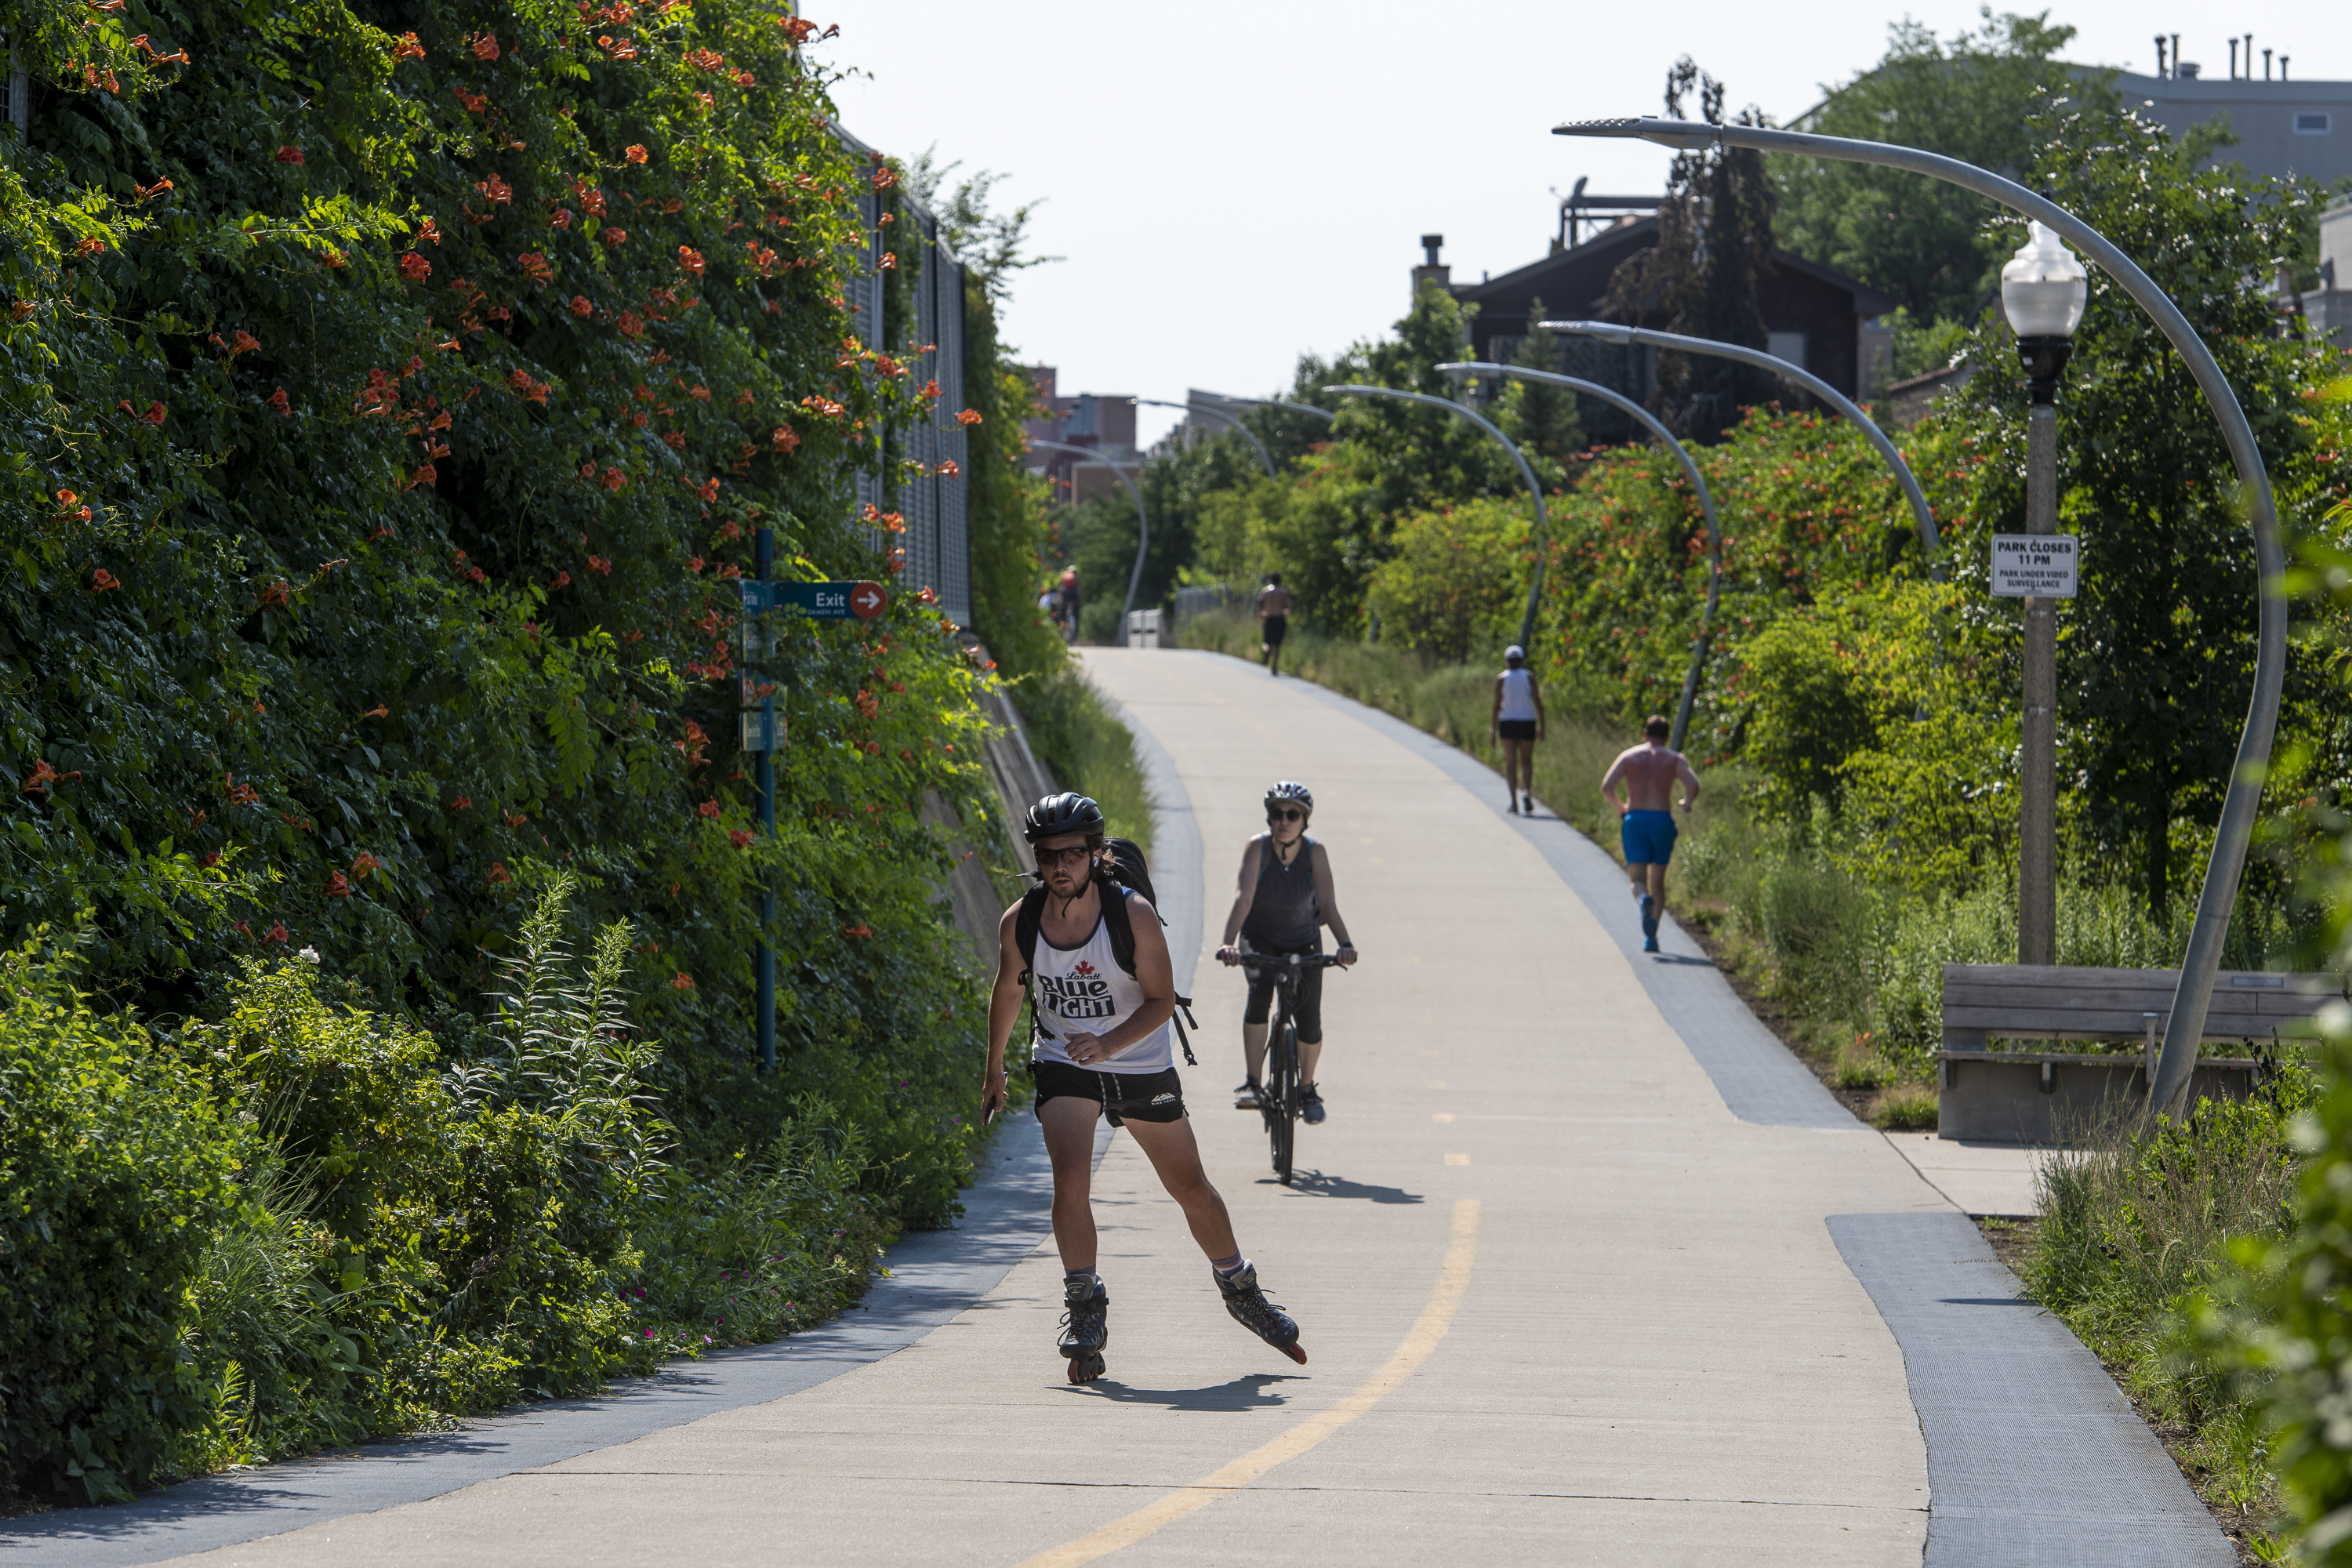 People jog, cycle and rollerblade along The 606 trail near North Damen Avenue in the Bucktown neighborhood.